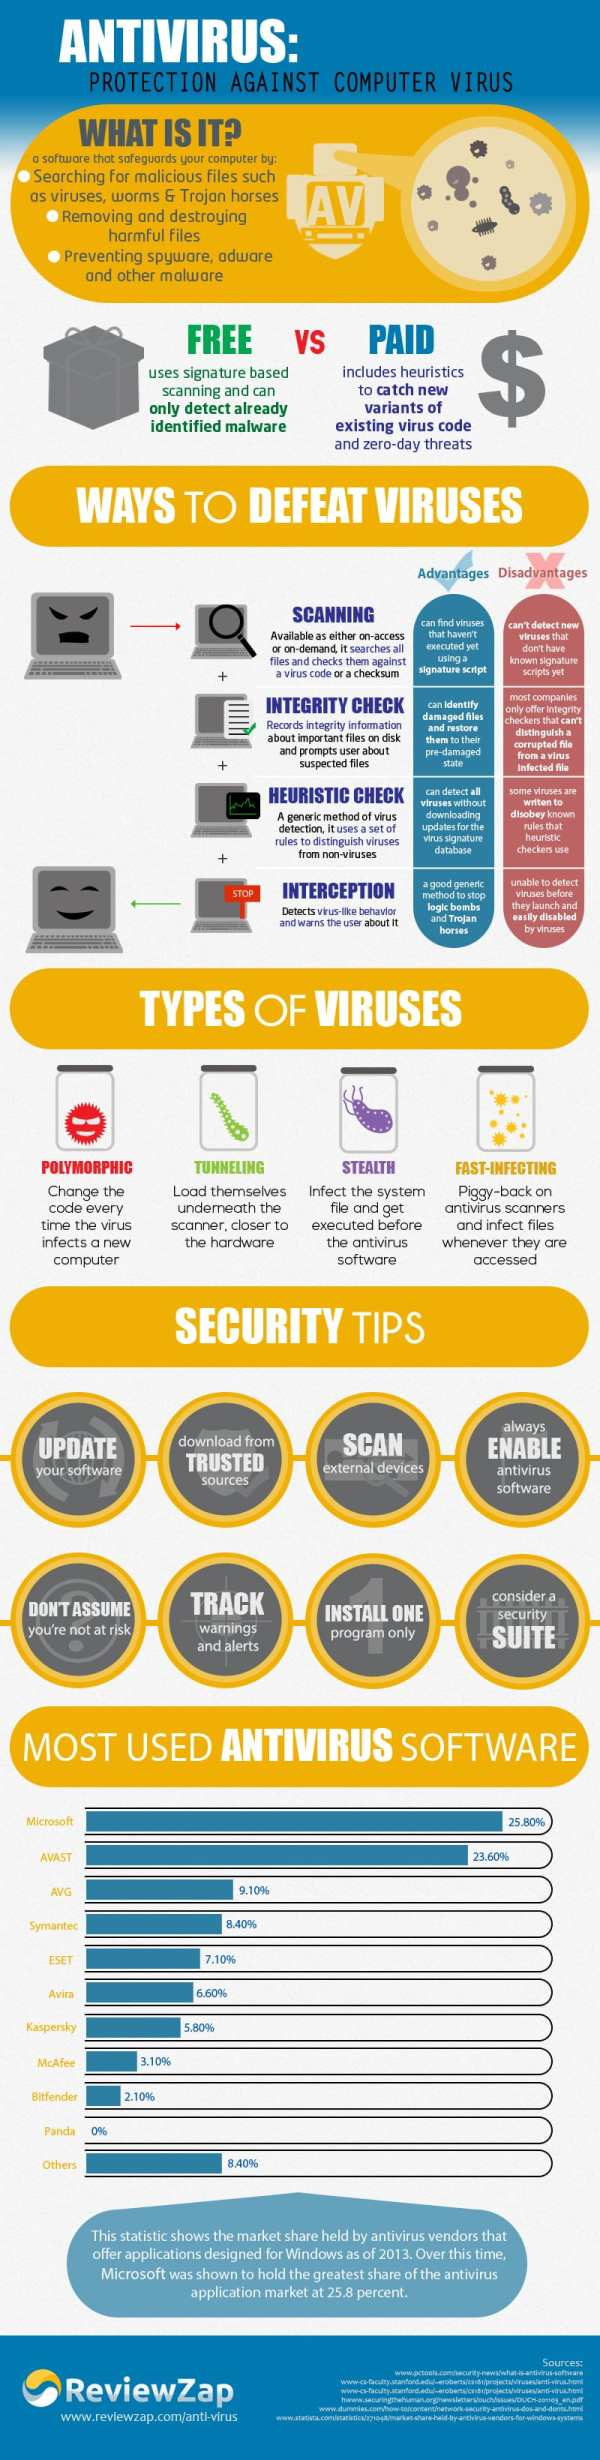 Free antivirus Software vs paid - infographic